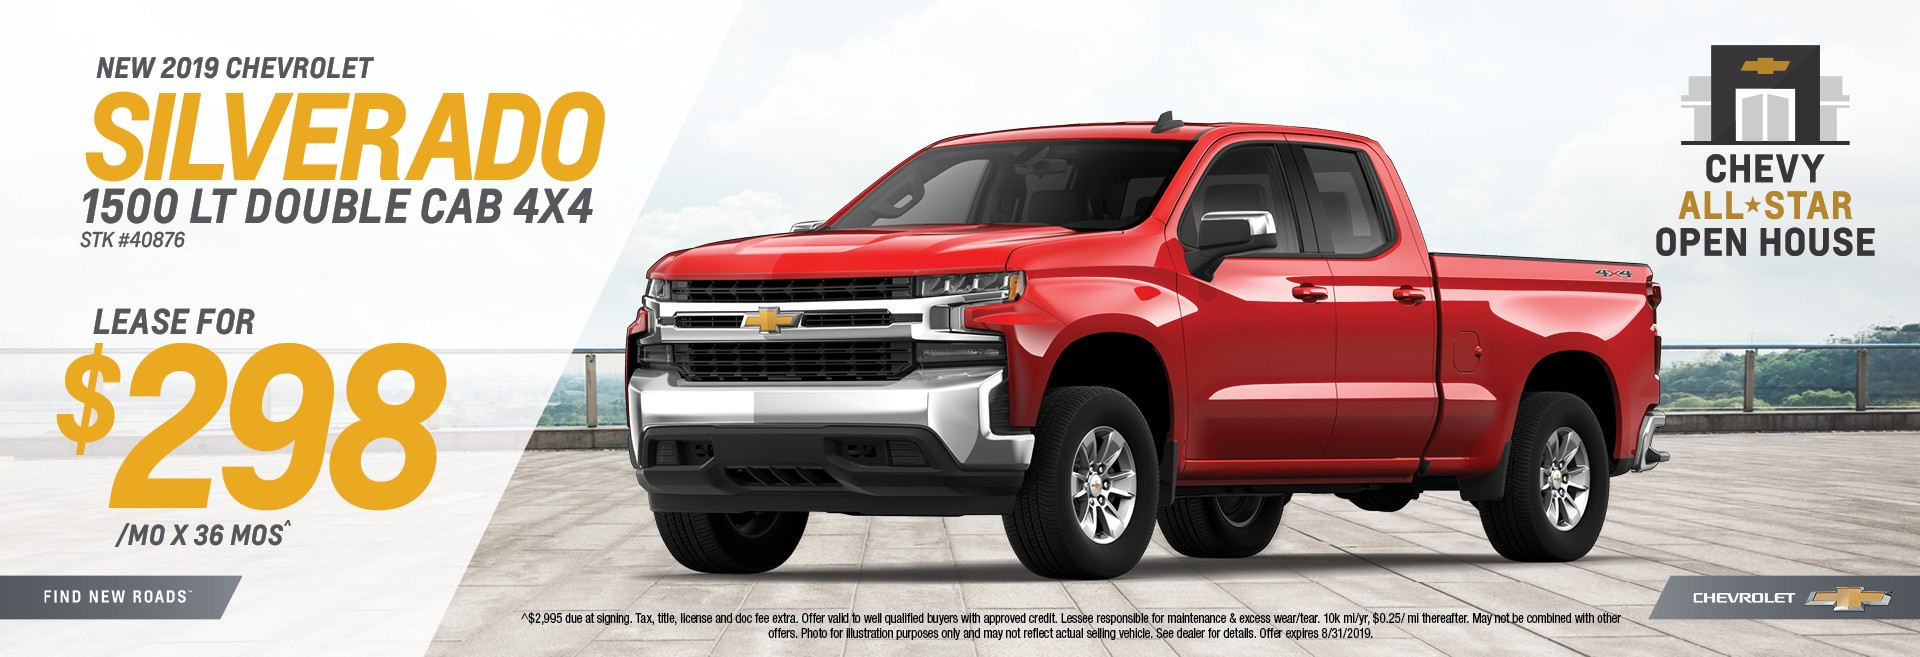 New 2019 Chevrolet Silverado 1500 LT Double CAb 4x4